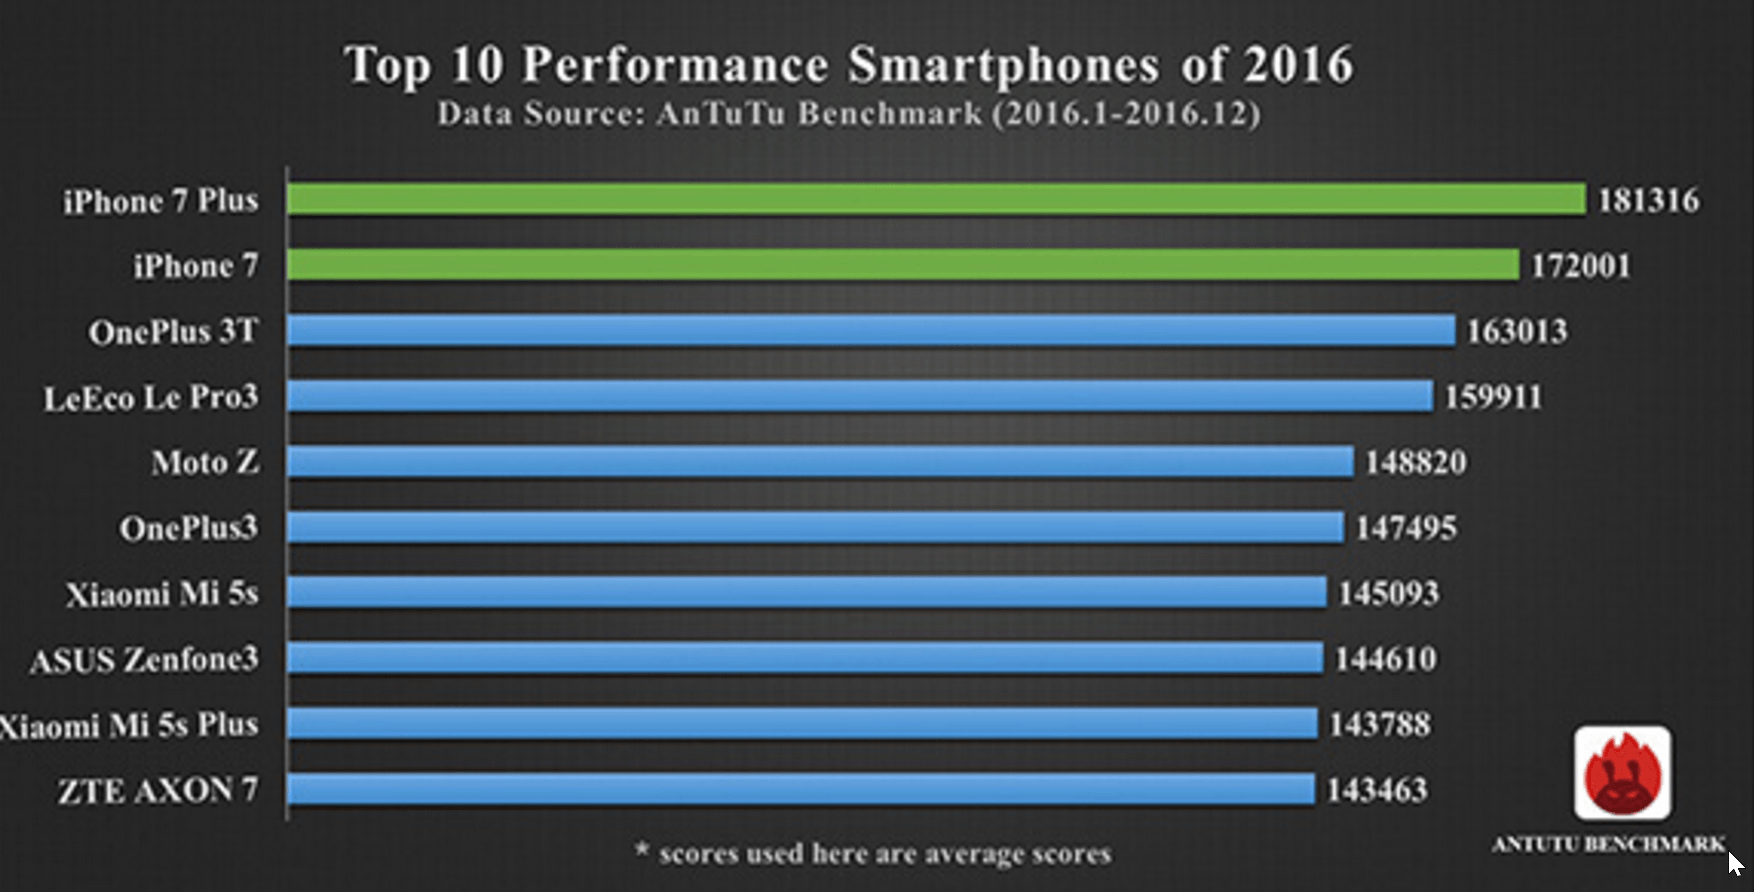 Iphone 7 tops 2016 smartphone performance chart